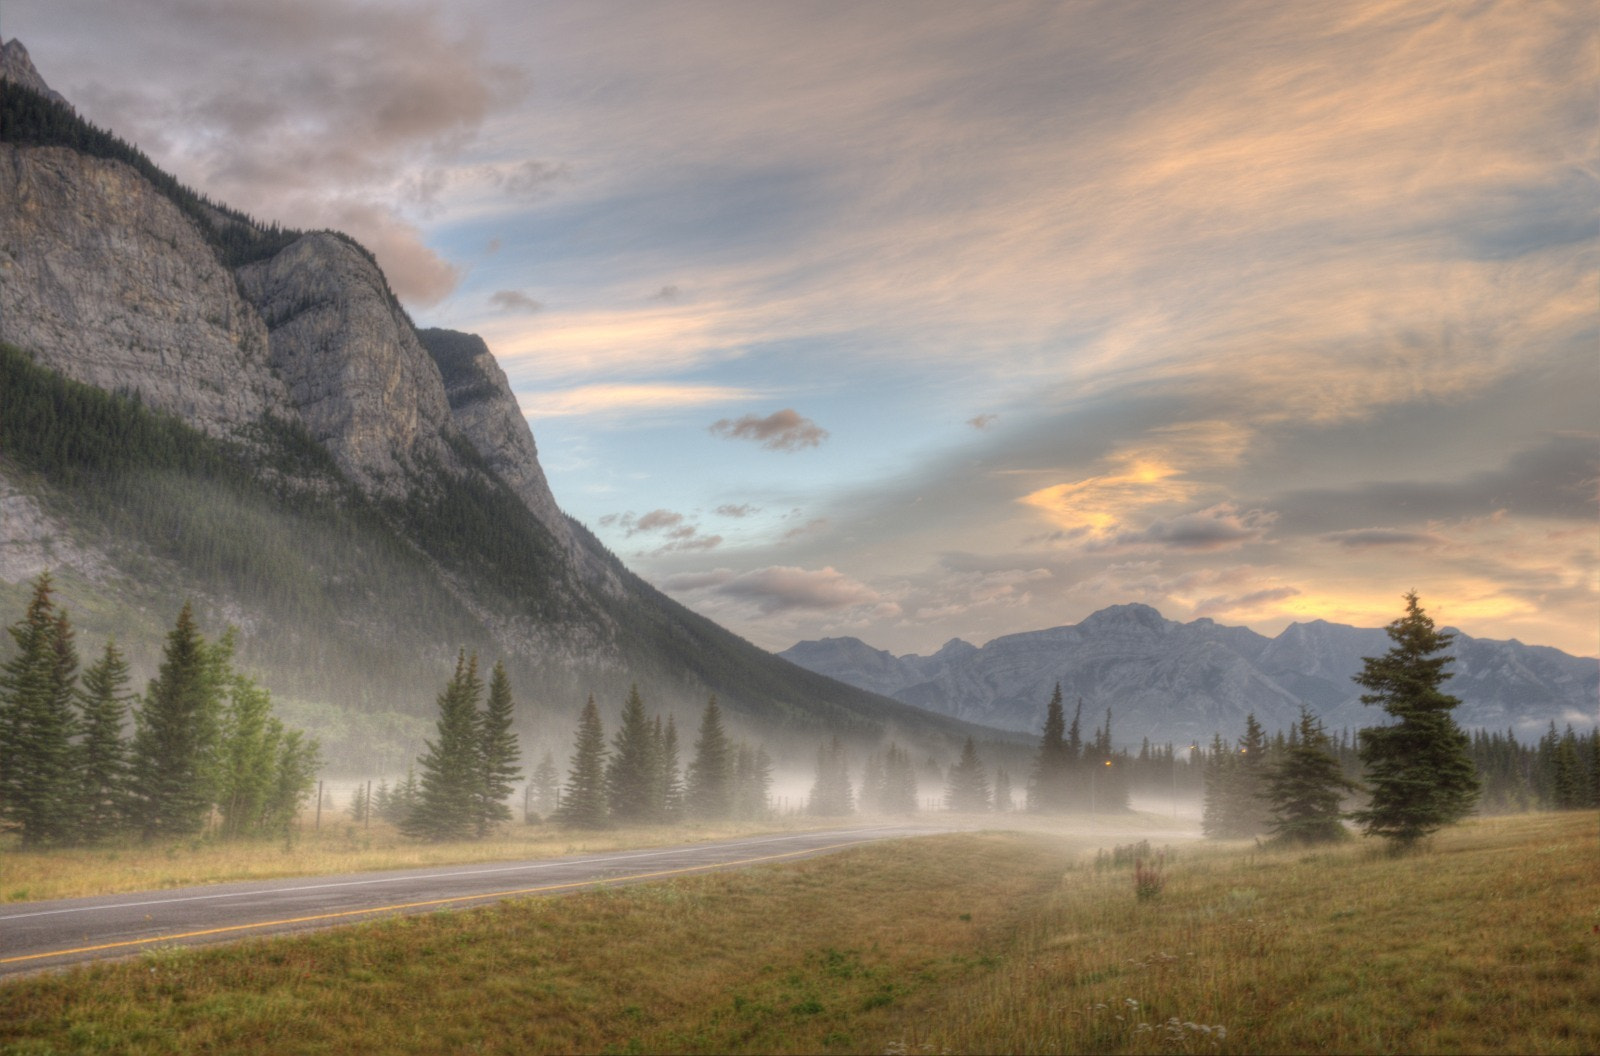 Photograph Foggy morning in Canadian Rockies by Svetlana Golovko on 500px